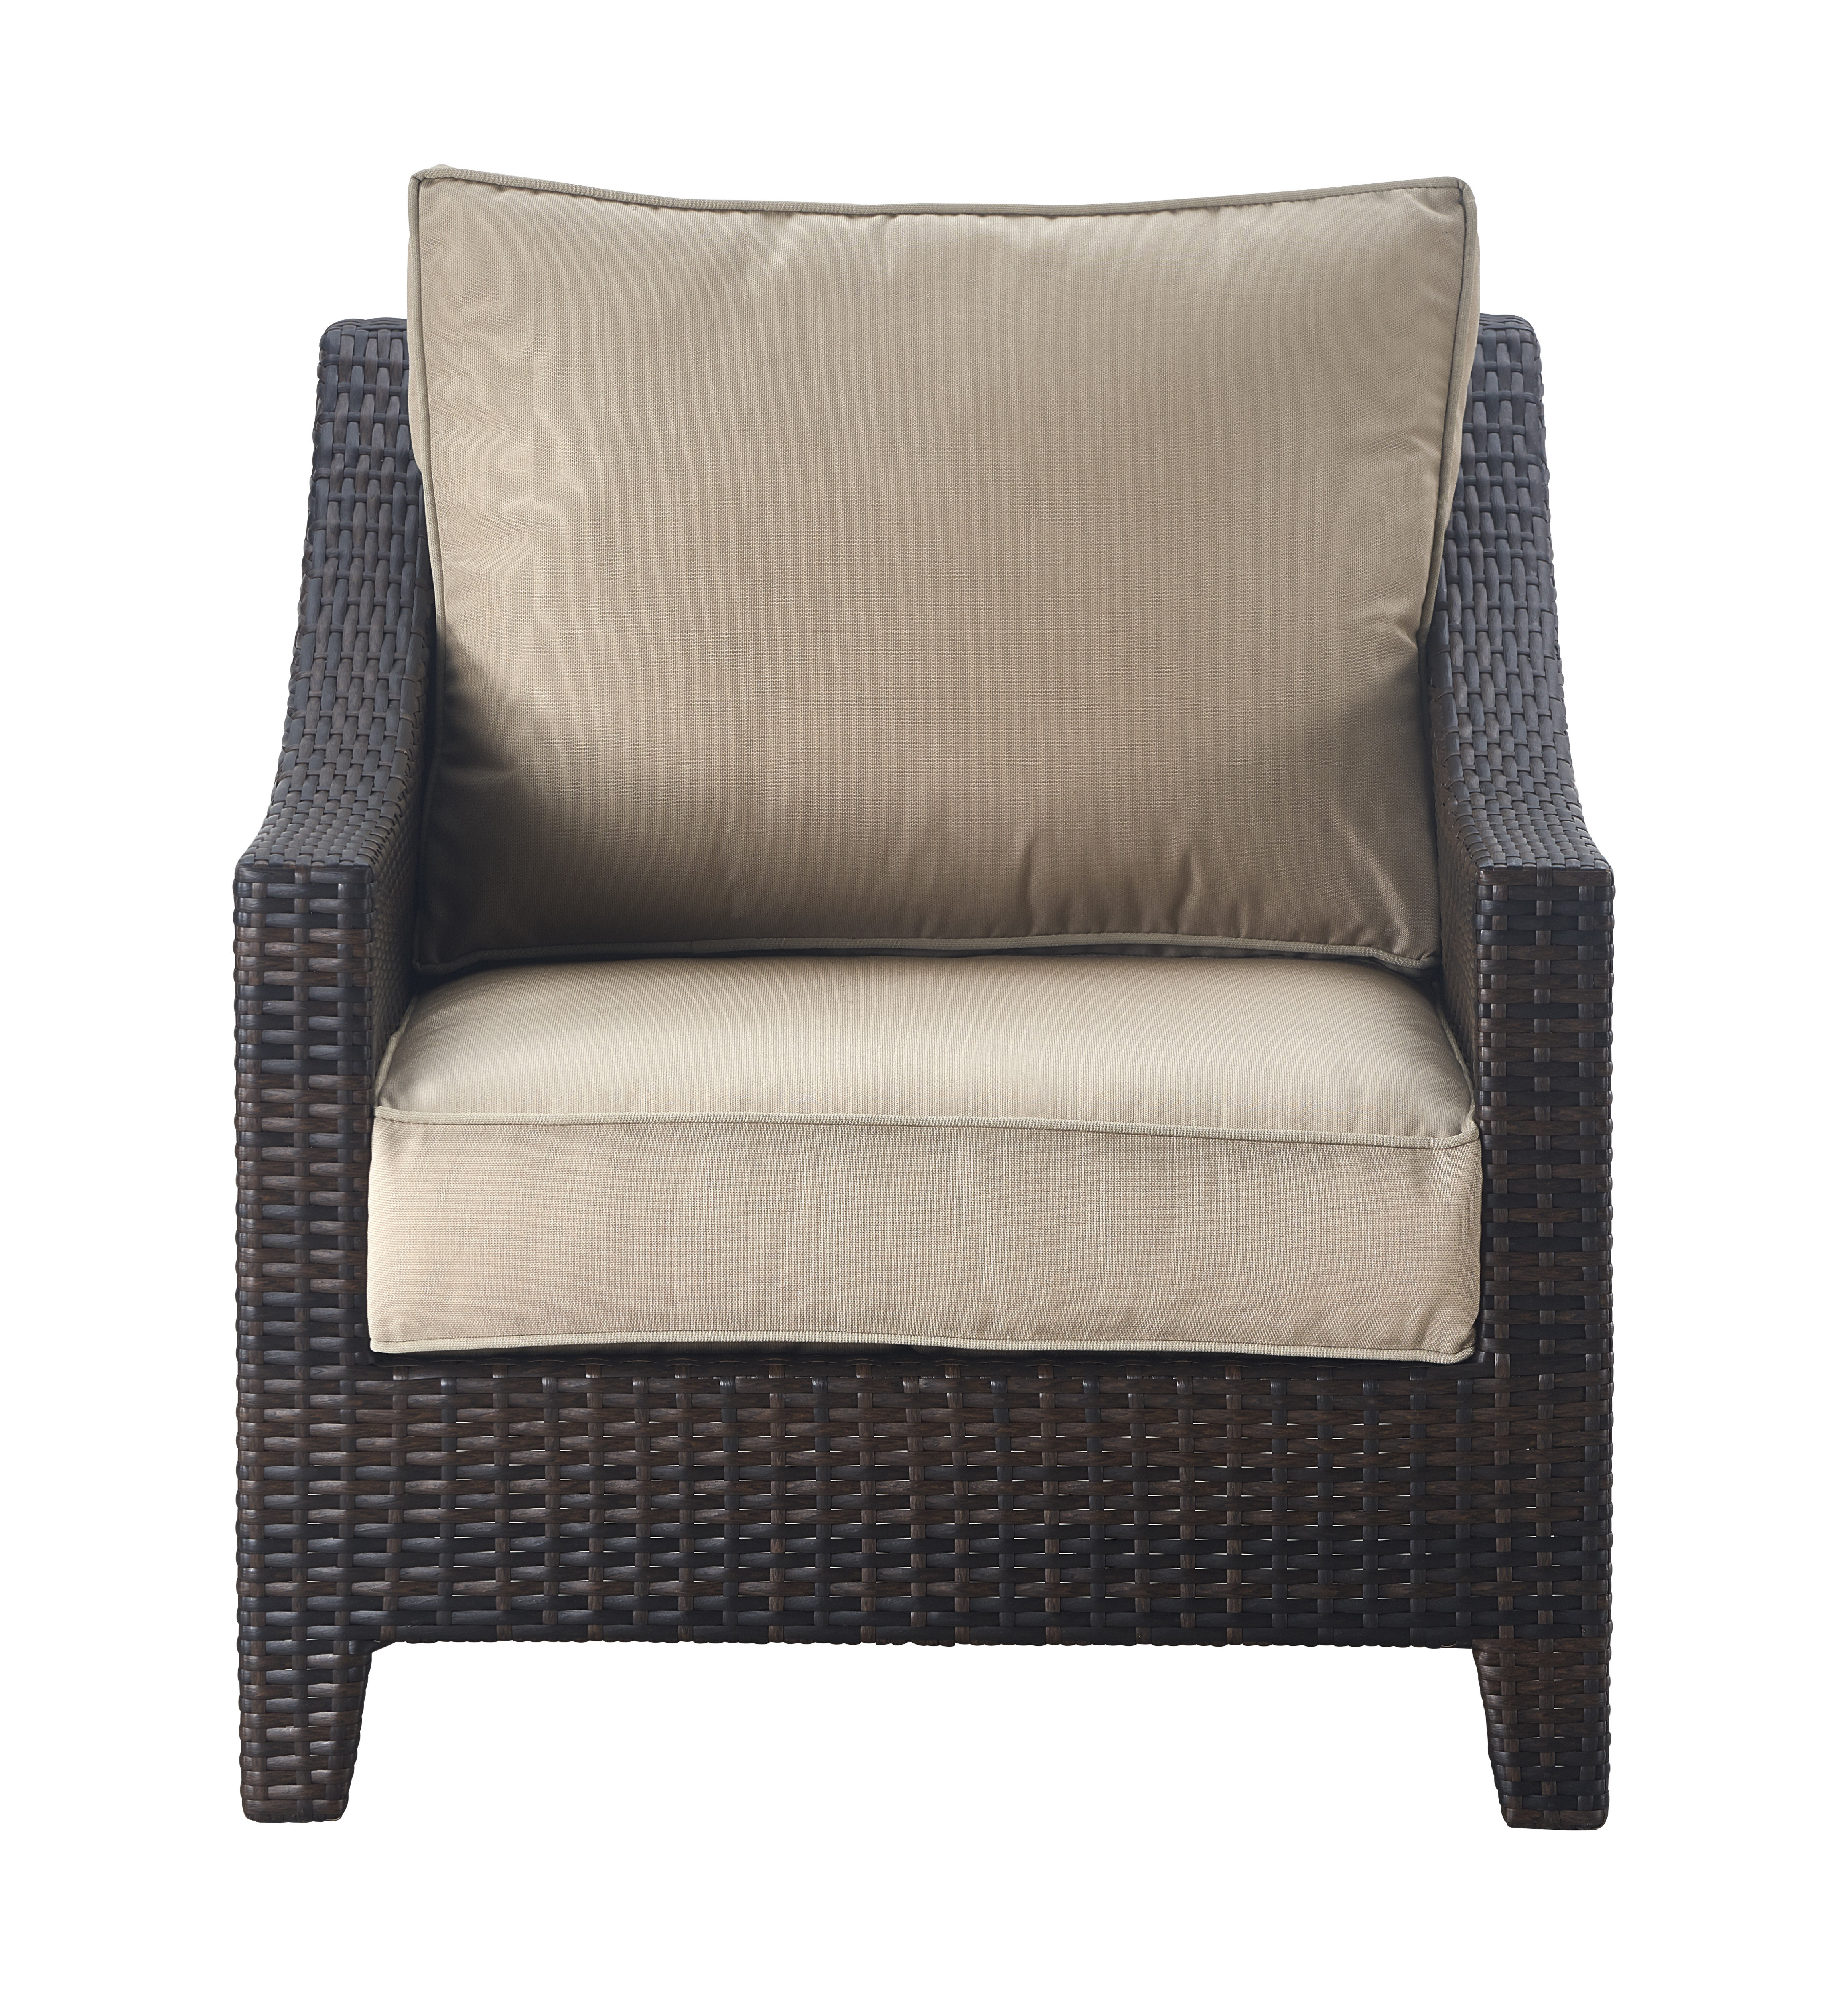 Well Liked Tahoe Outdoor Wicker Patio Chair With Cushions For Stapleton Wicker Resin Patio Sofas With Cushions (View 19 of 20)